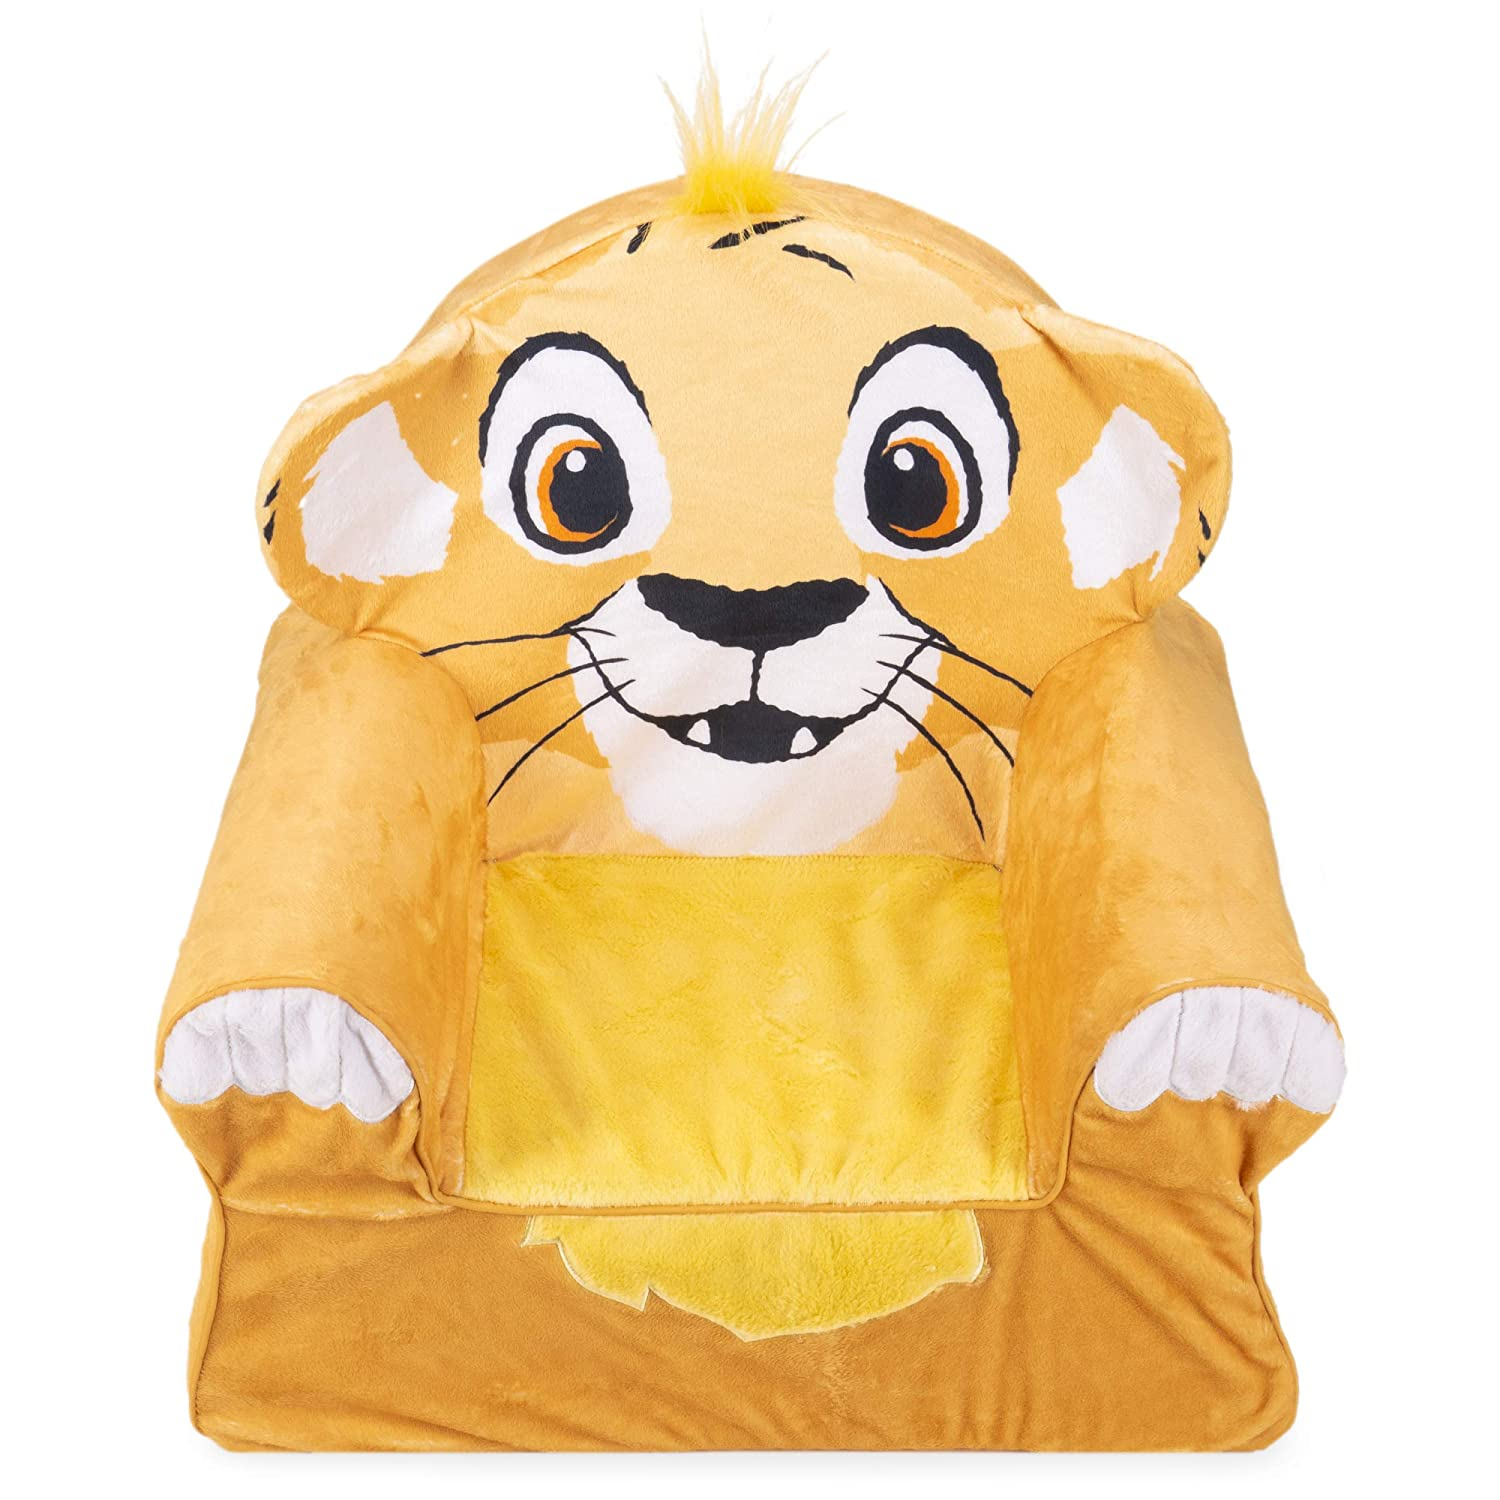 Marshmallow Furniture, Children's Foam Comfy Chair, The Lion King, by Spin Master